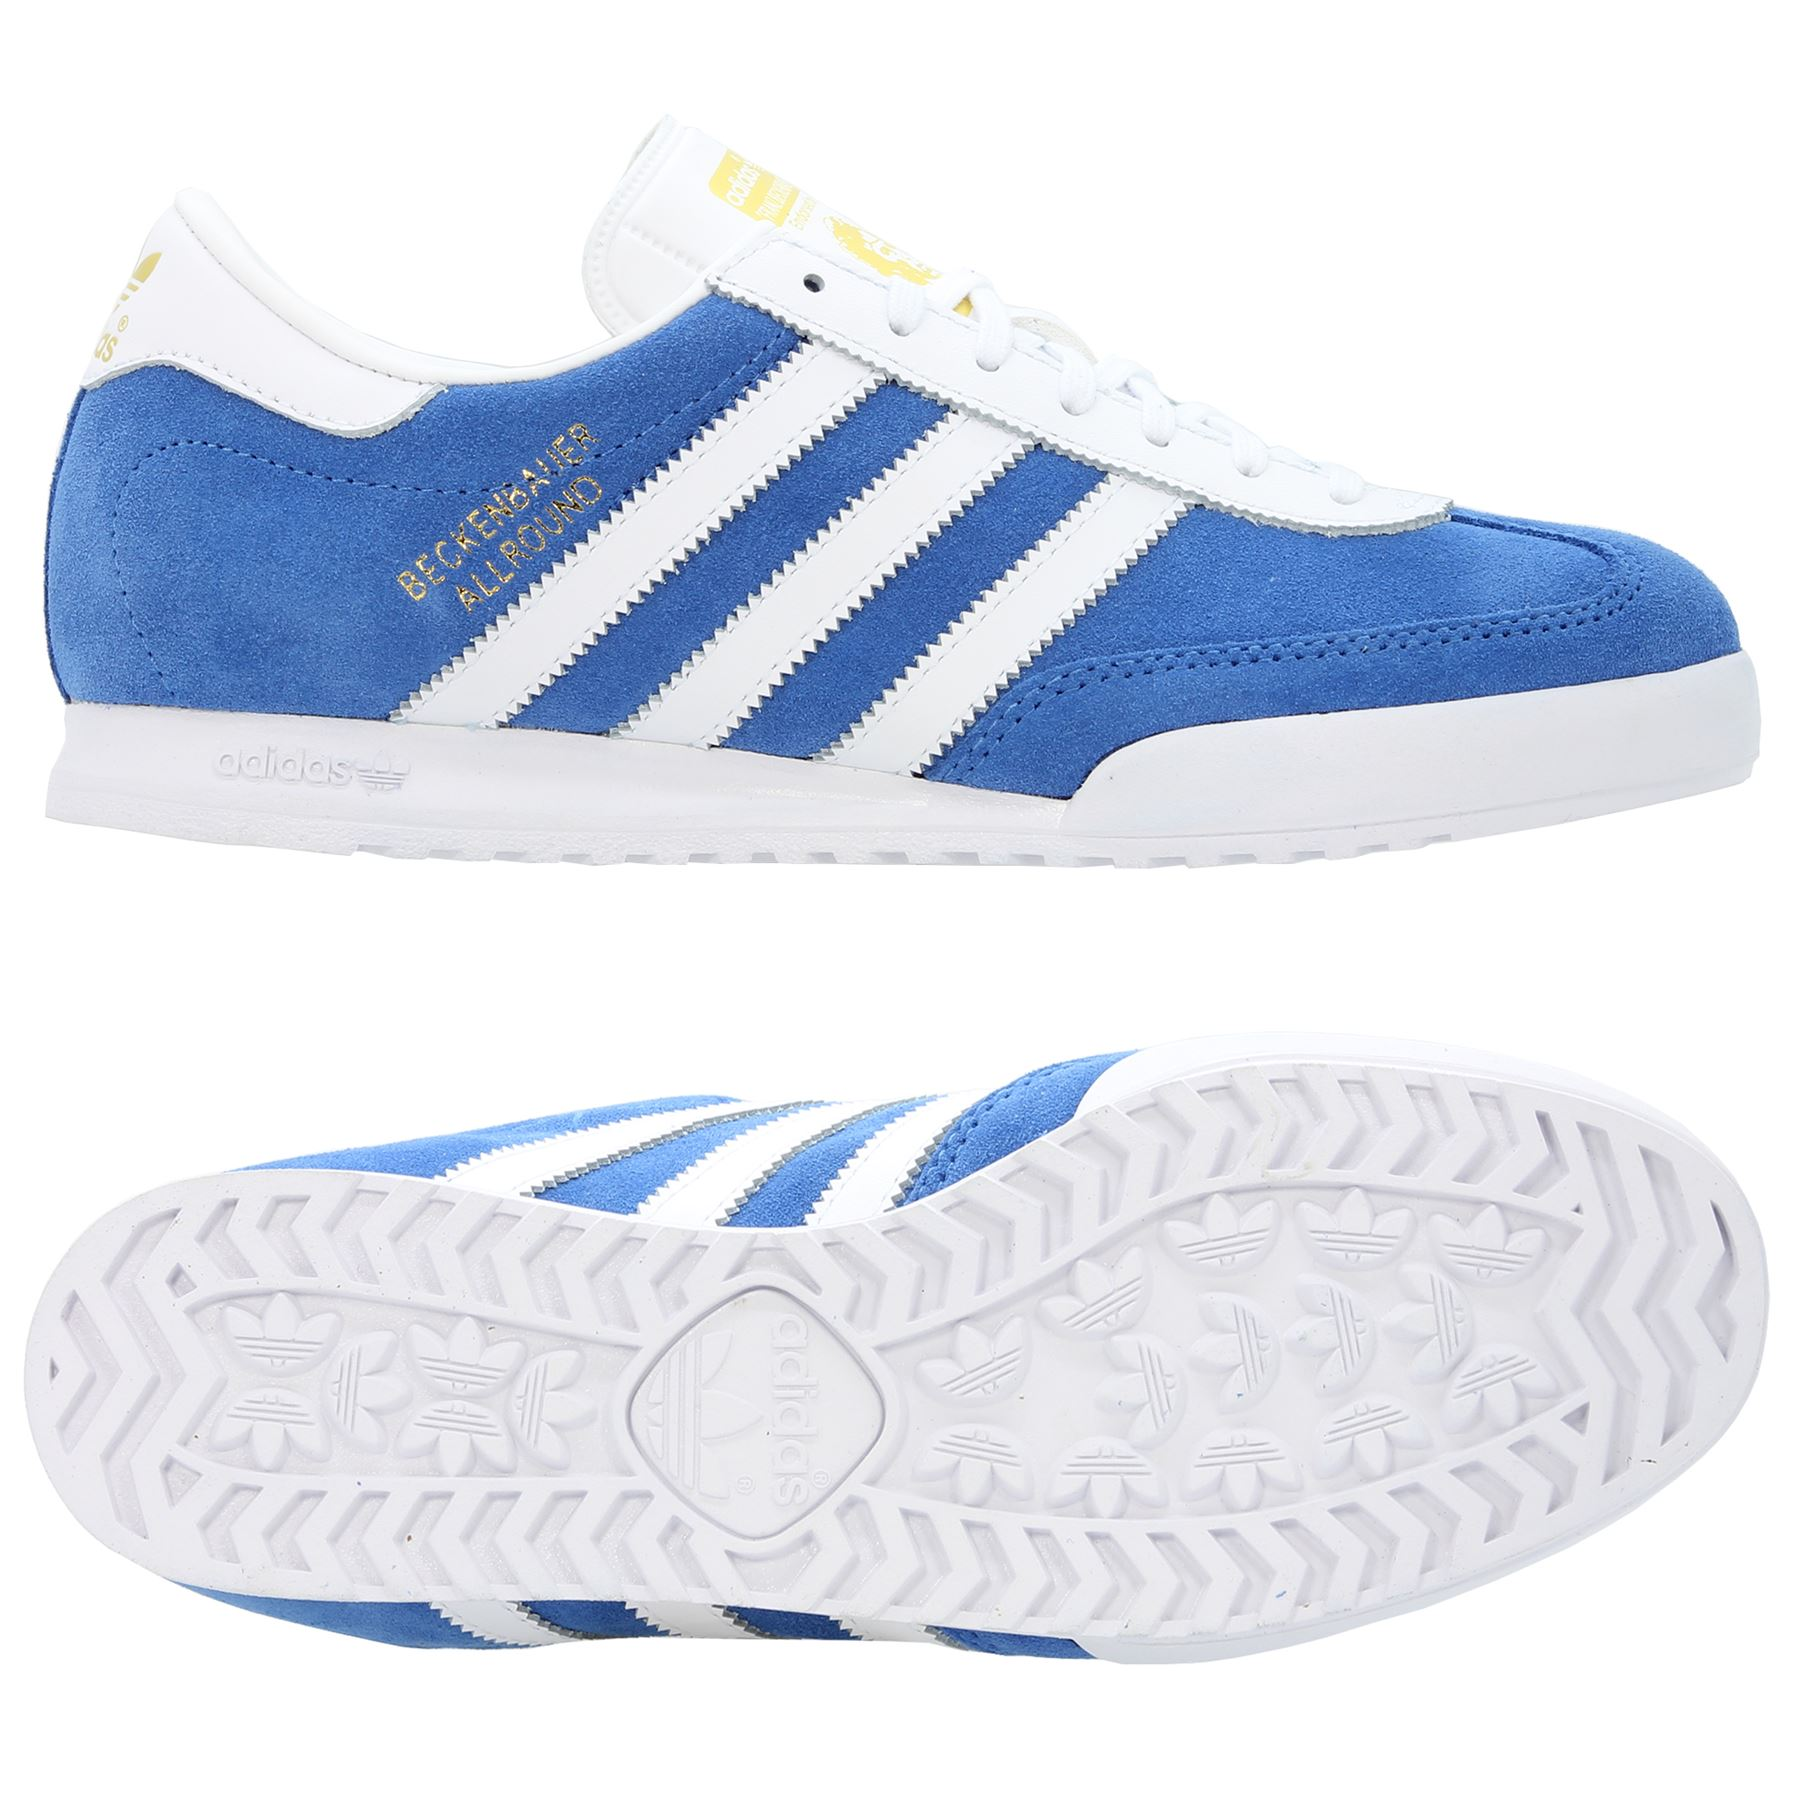 newest 96f06 bb05c Details about ADIDAS ORIGINALS MEN S BECKENBAUER TRAINERS BLUE SUEDE WHITE TRAINERS  SNEAKERS